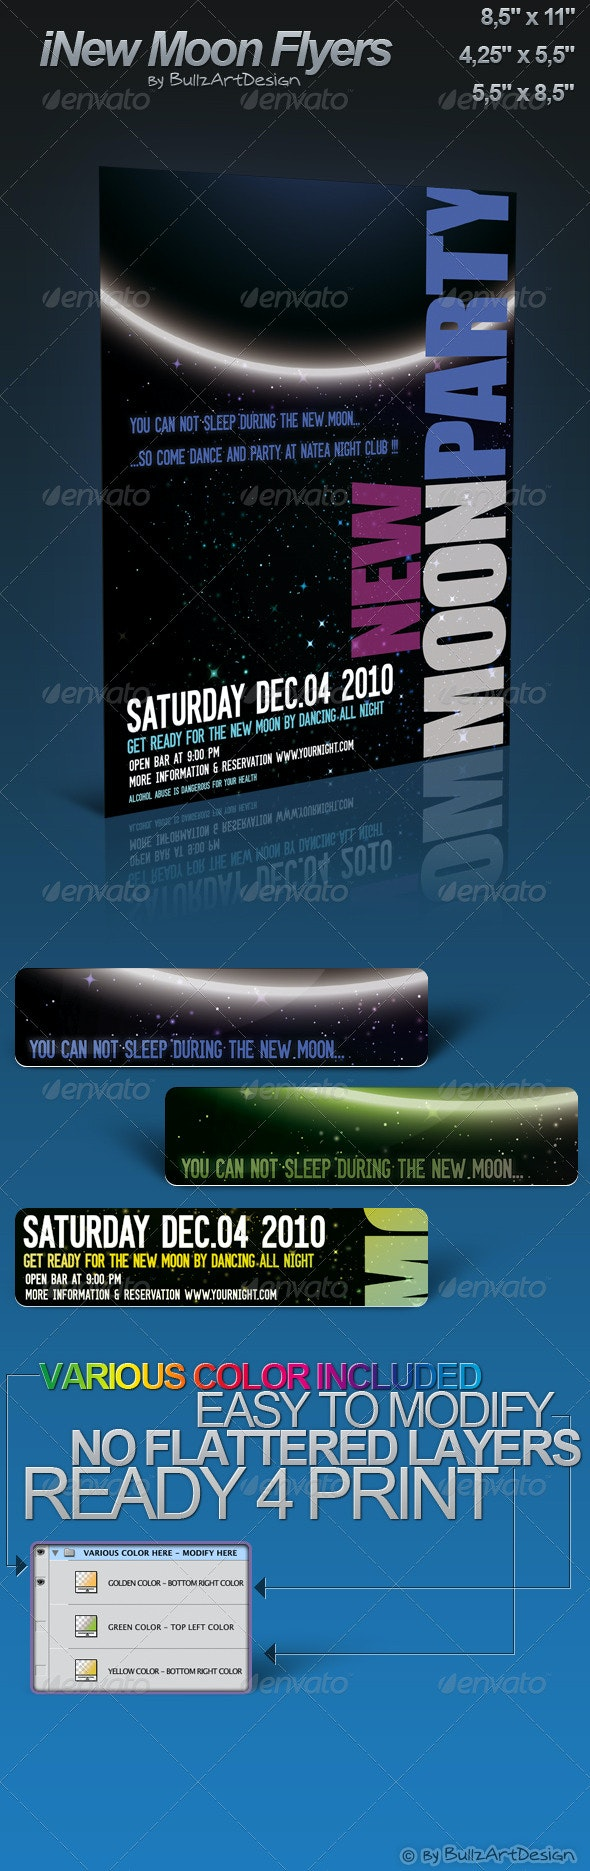 iNew Moon Party Flyers - Clubs & Parties Events